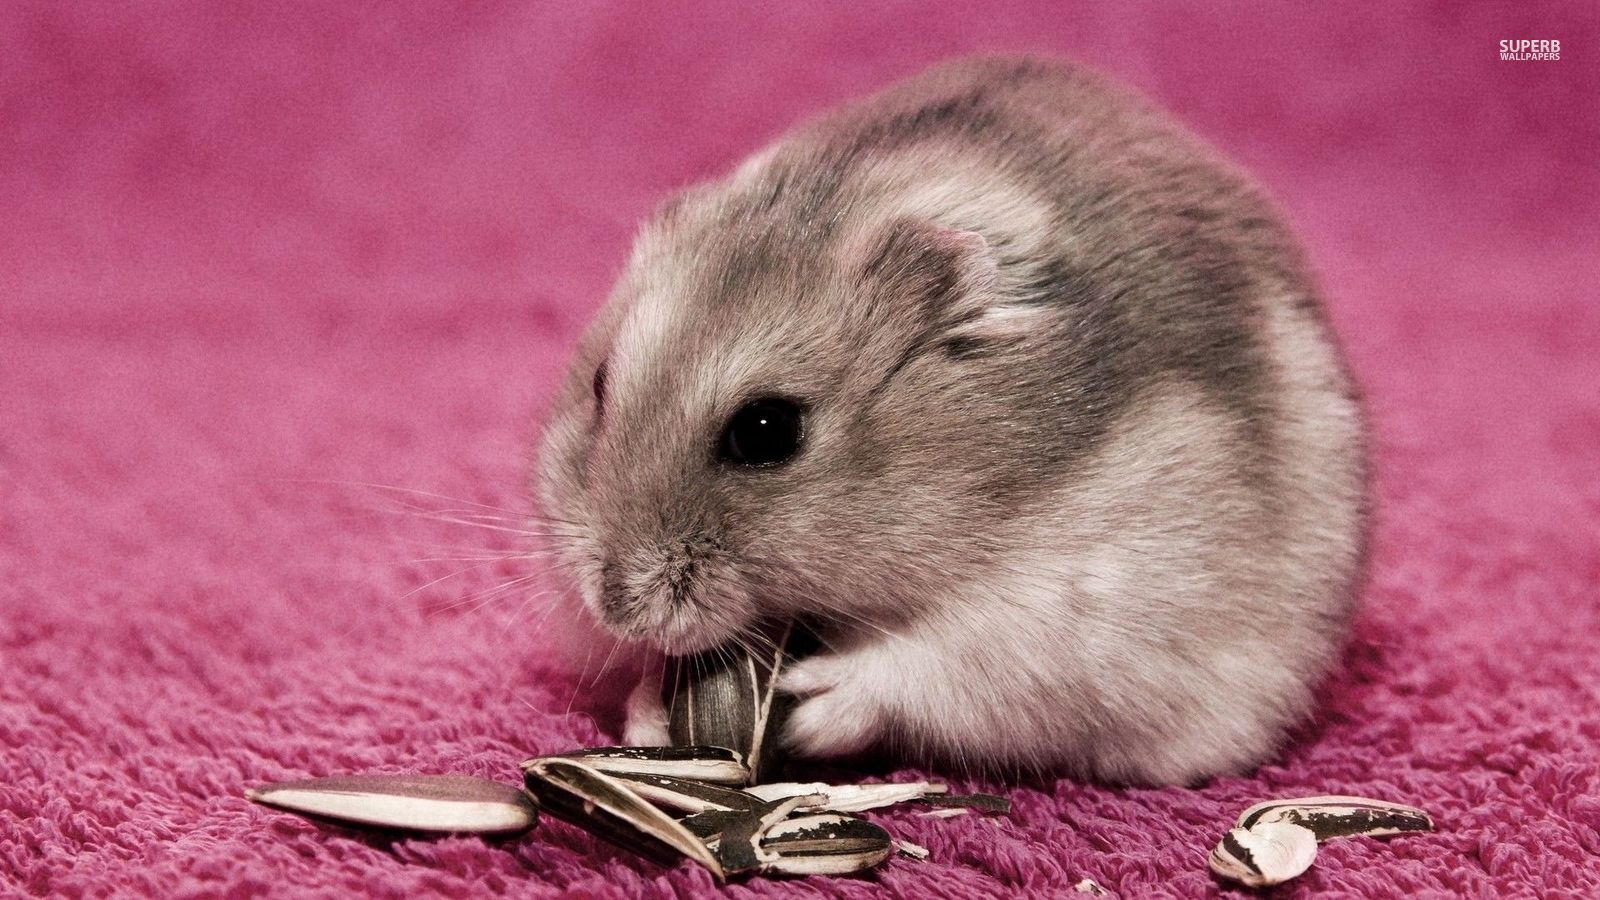 Cute Cartoon Hd Wallpapers Free Download Hamster Animals Wallpaper 38674647 Fanpop